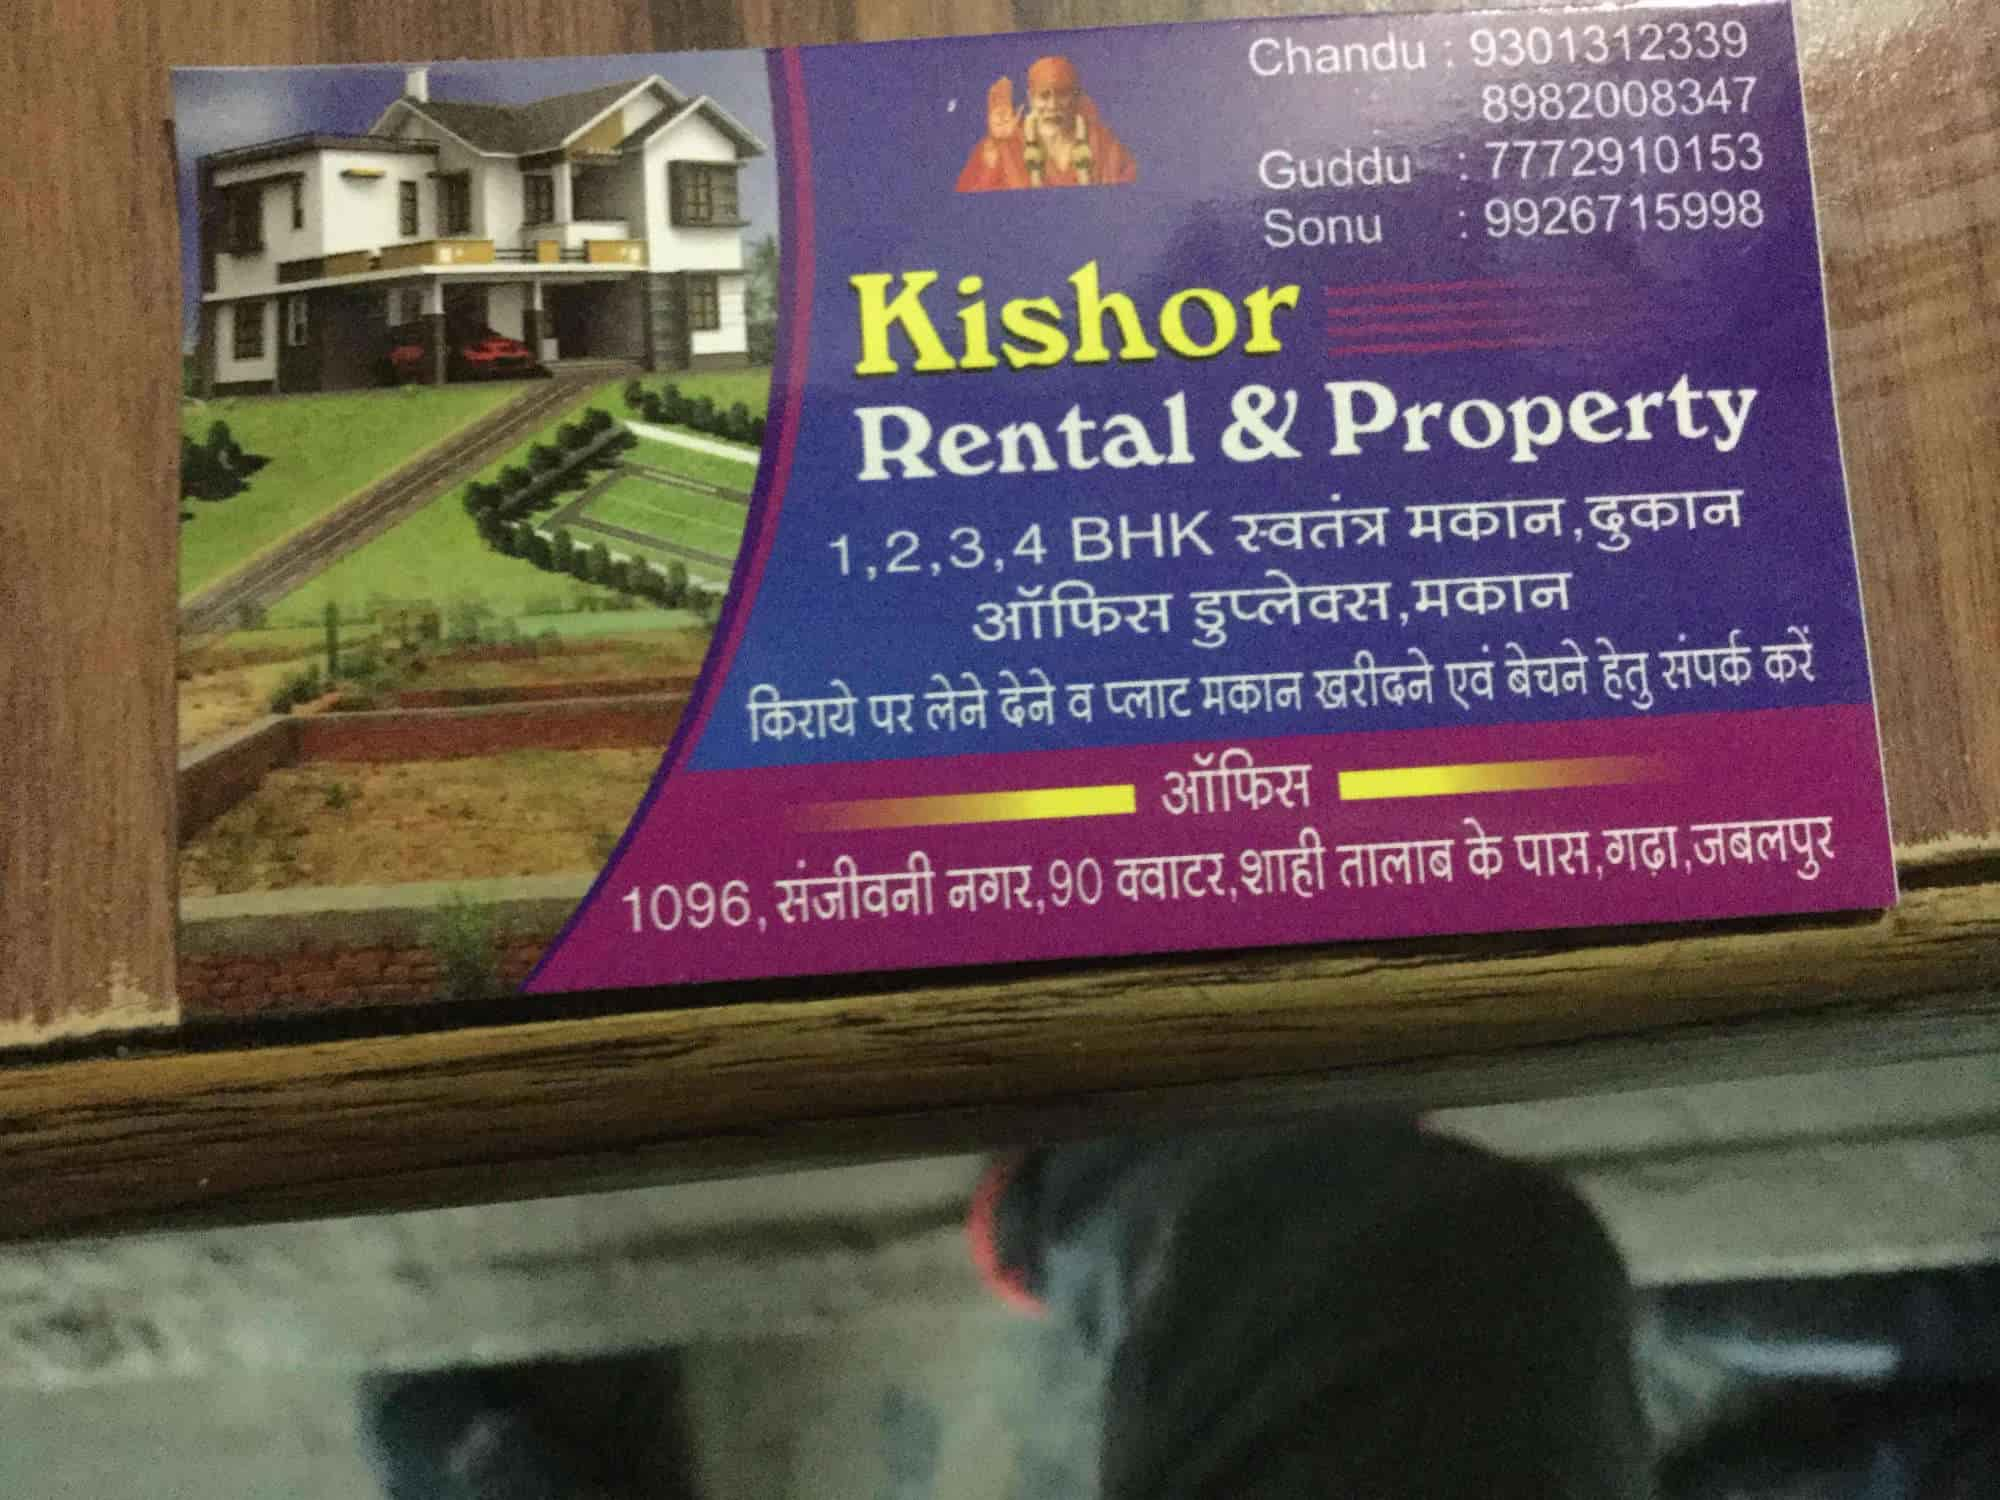 Kisr Rental &property, Jabalpur City